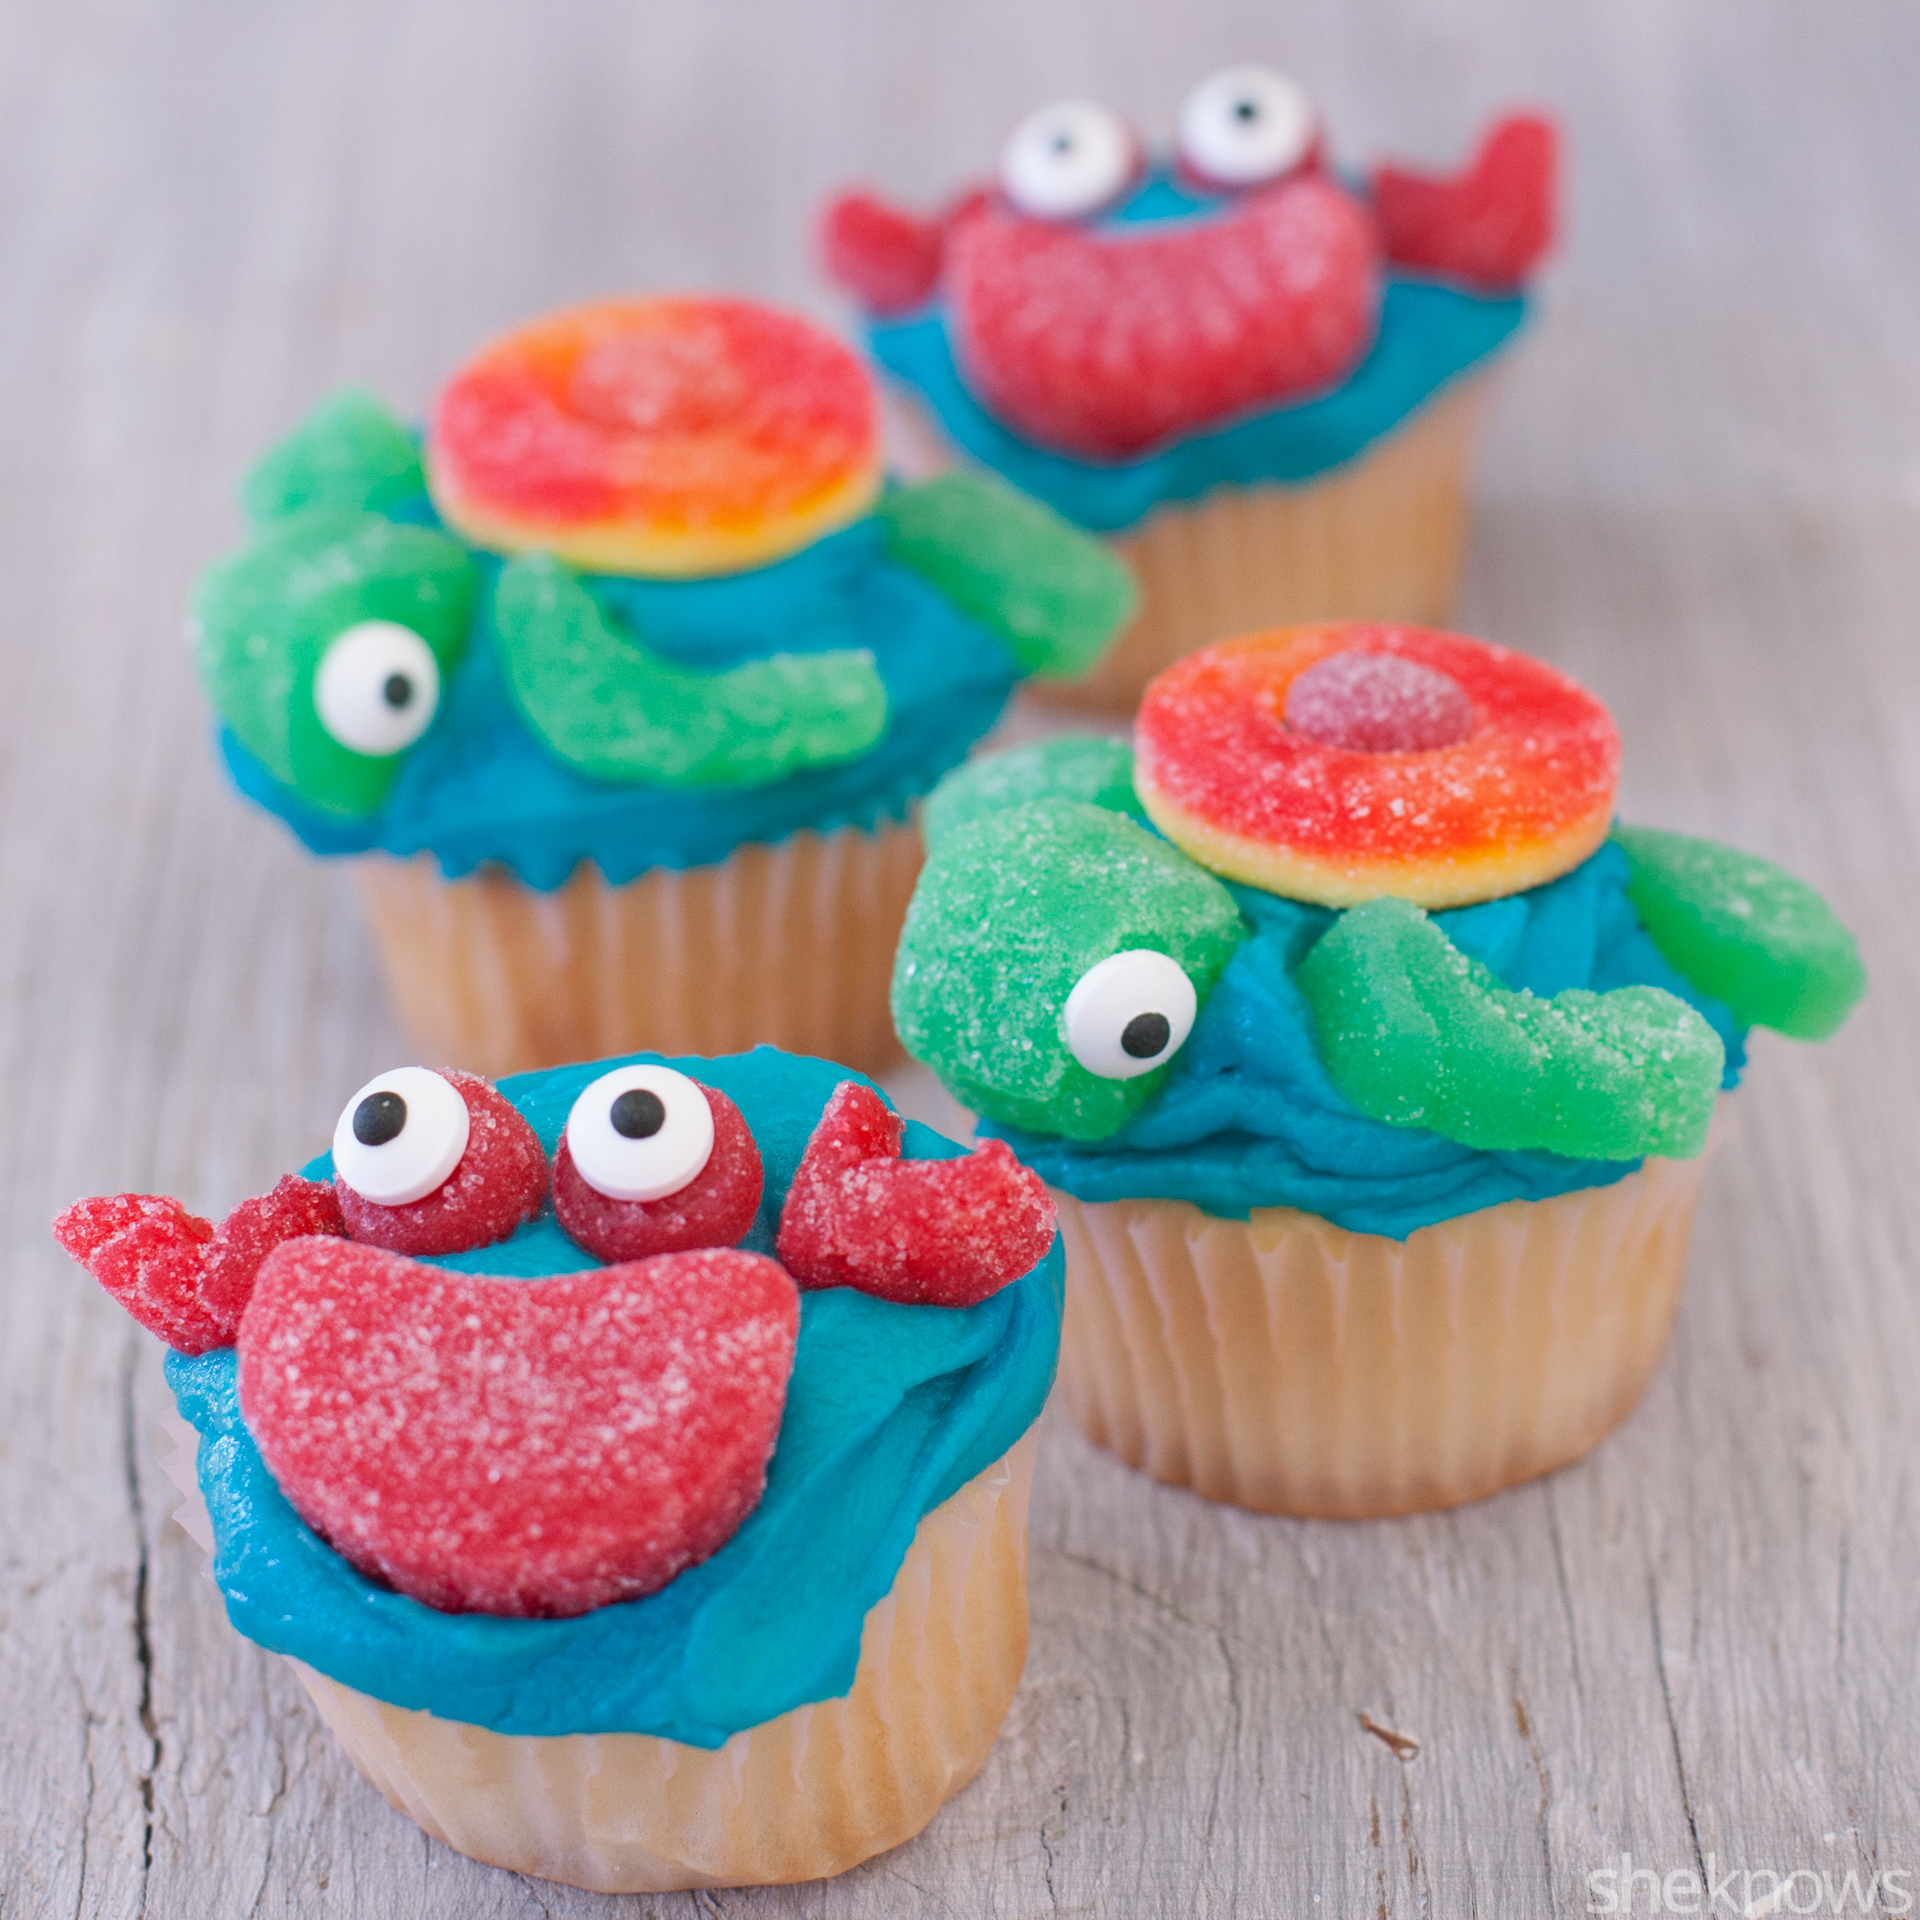 Can I Make Cupcakes Out Of Cake Mix